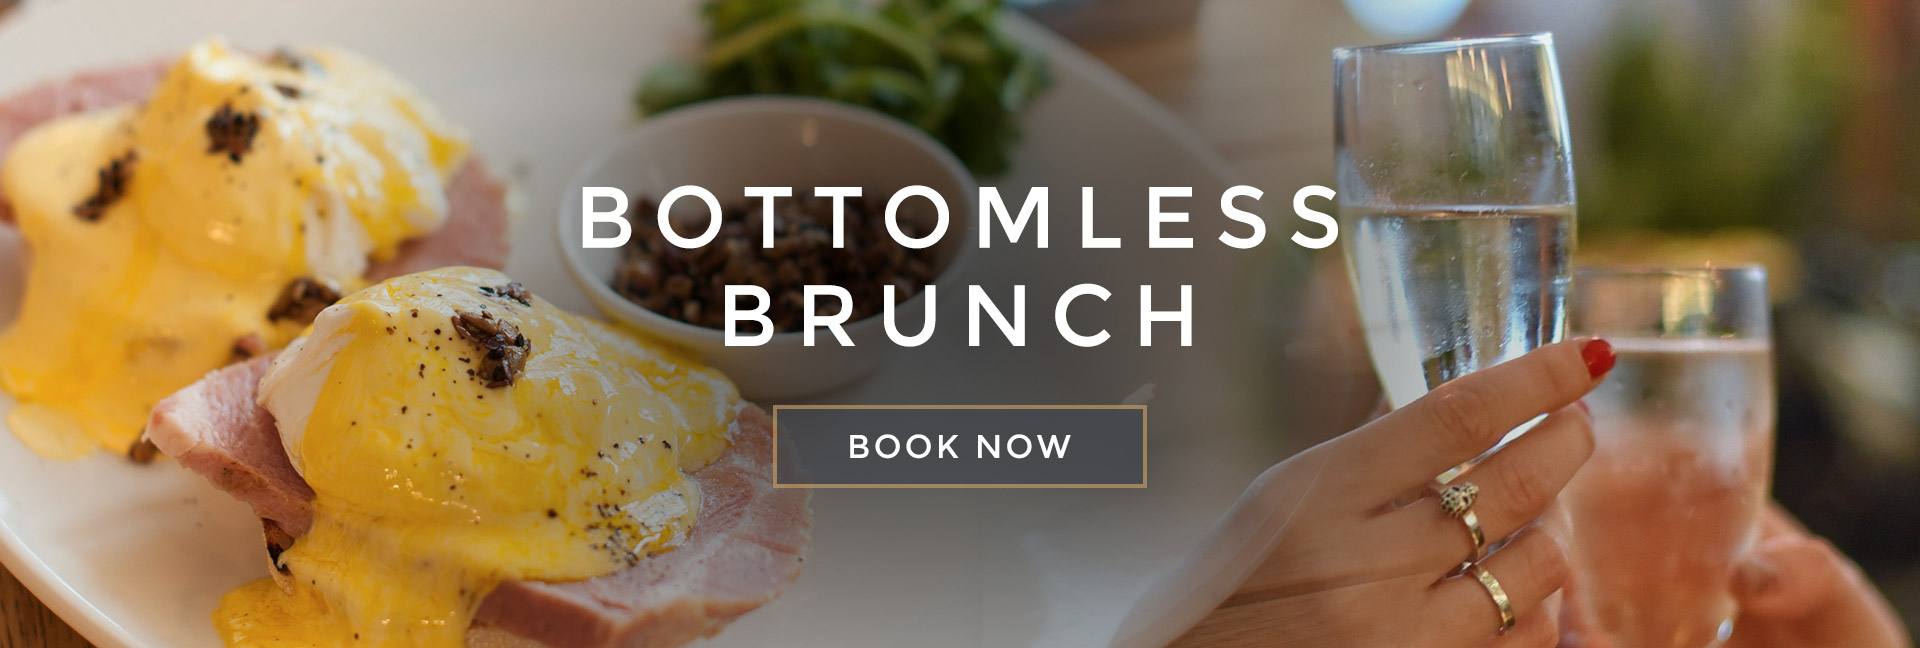 Bottomless Brunch at All Bar One Sutton - Book now